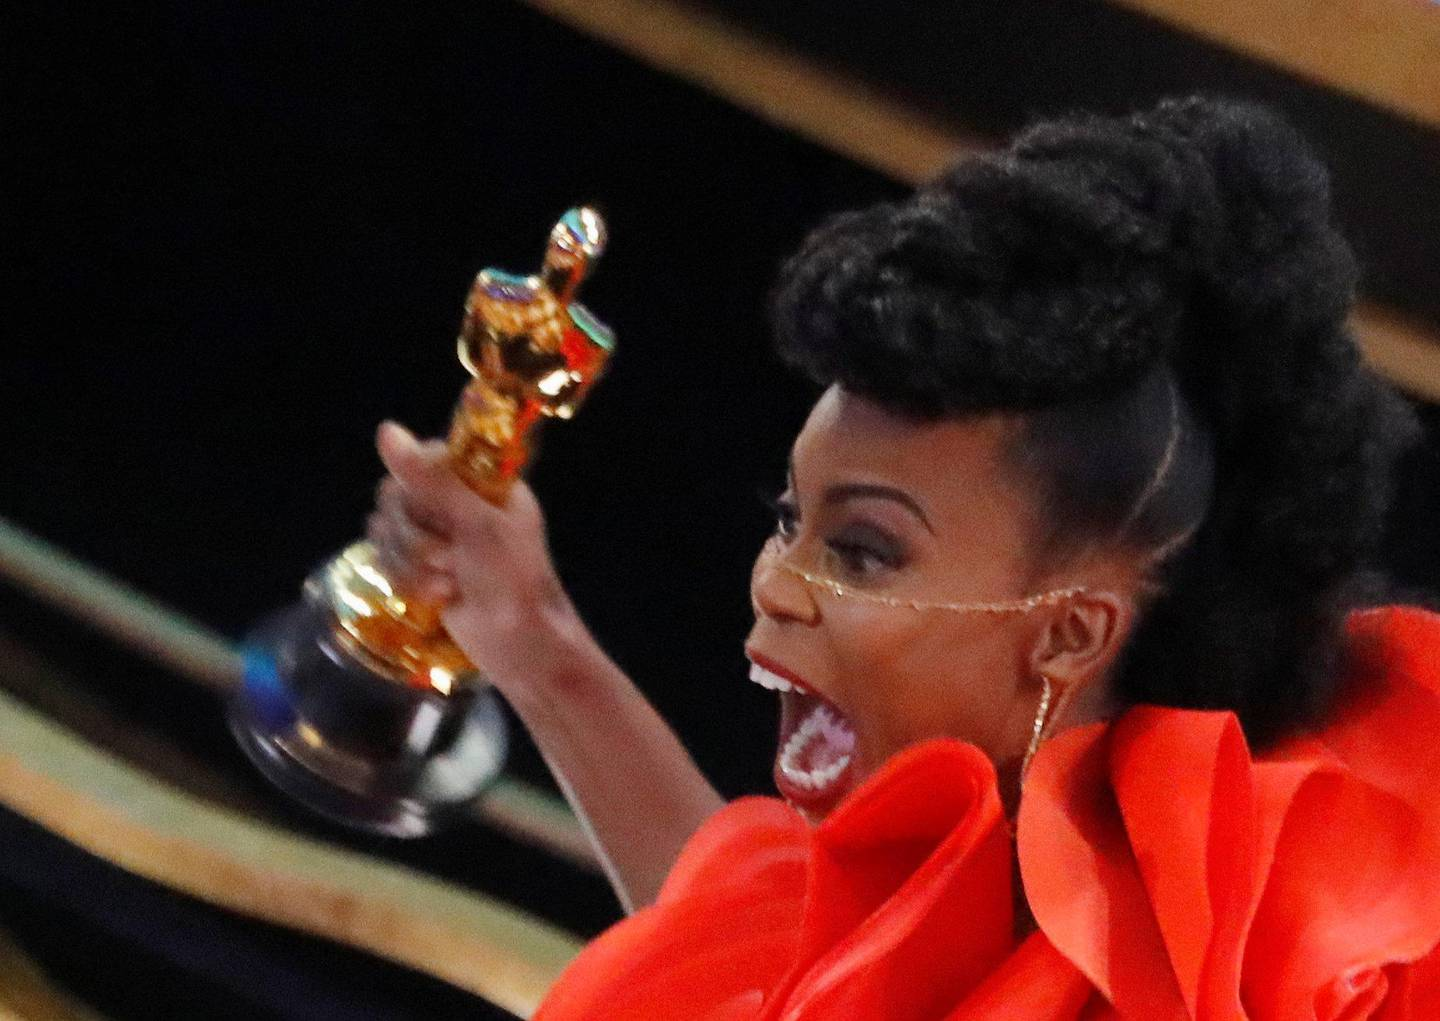 """91st Academy Awards - Oscars Show - Hollywood, Los Angeles, California, U.S., February 24, 2019. Hannah Beachler celebrates with her Oscar for Best Production Design for """"Black Panther"""". REUTERS/Mike Blake     TPX IMAGES OF THE DAY"""